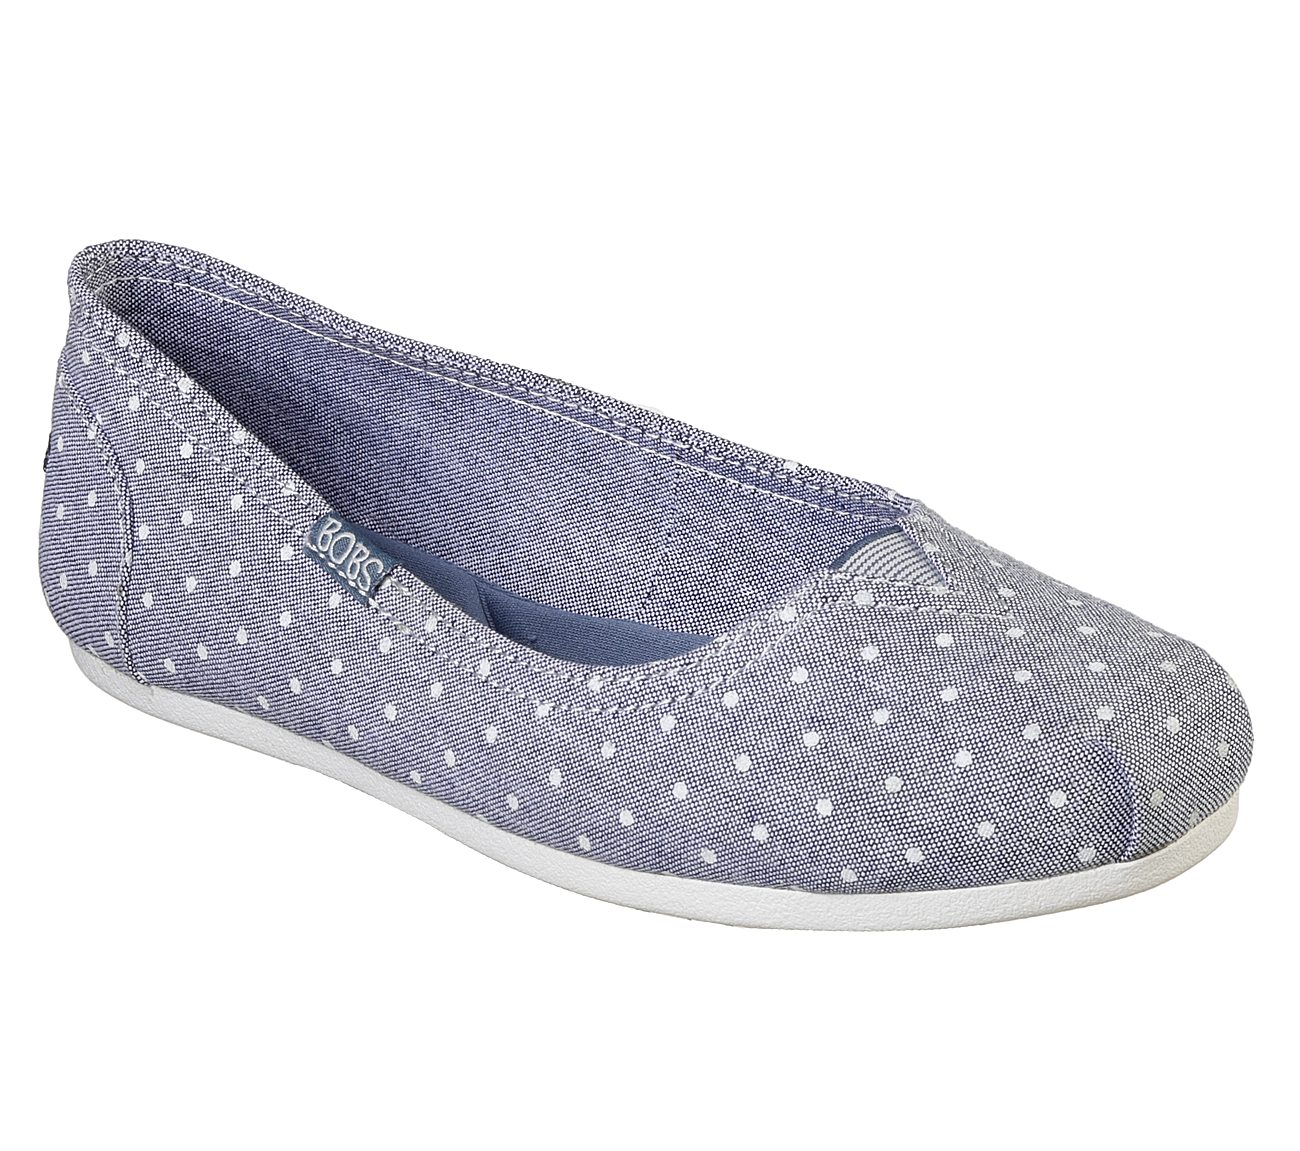 644315c4acdd Buy SKECHERS BOBS Plush - Tutu Tales BOBS Shoes only  39.00